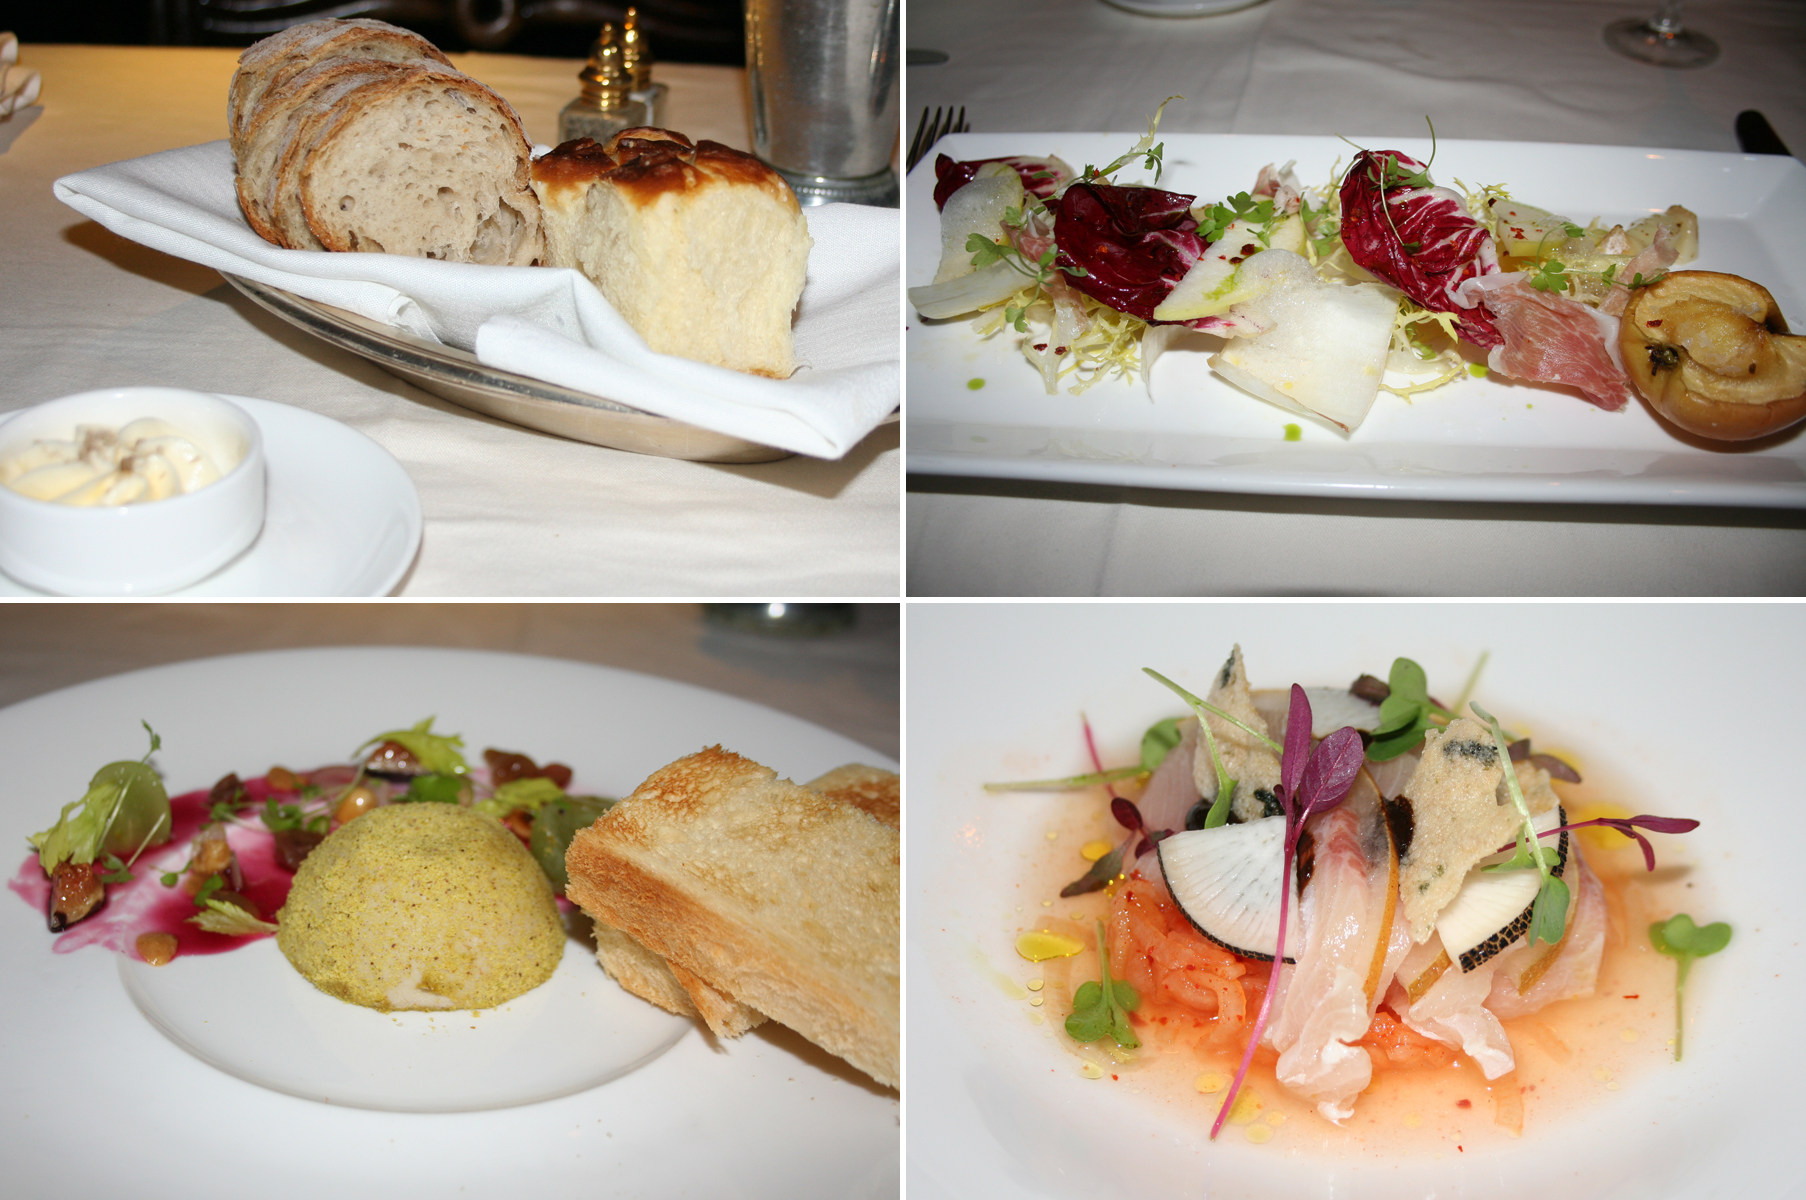 Our meal began with fresh baked bread (clockwise from top left), apple salad, hamachi crudo and foie gras torchon. (Photos: Mark Heckathorn/DC on Heels)